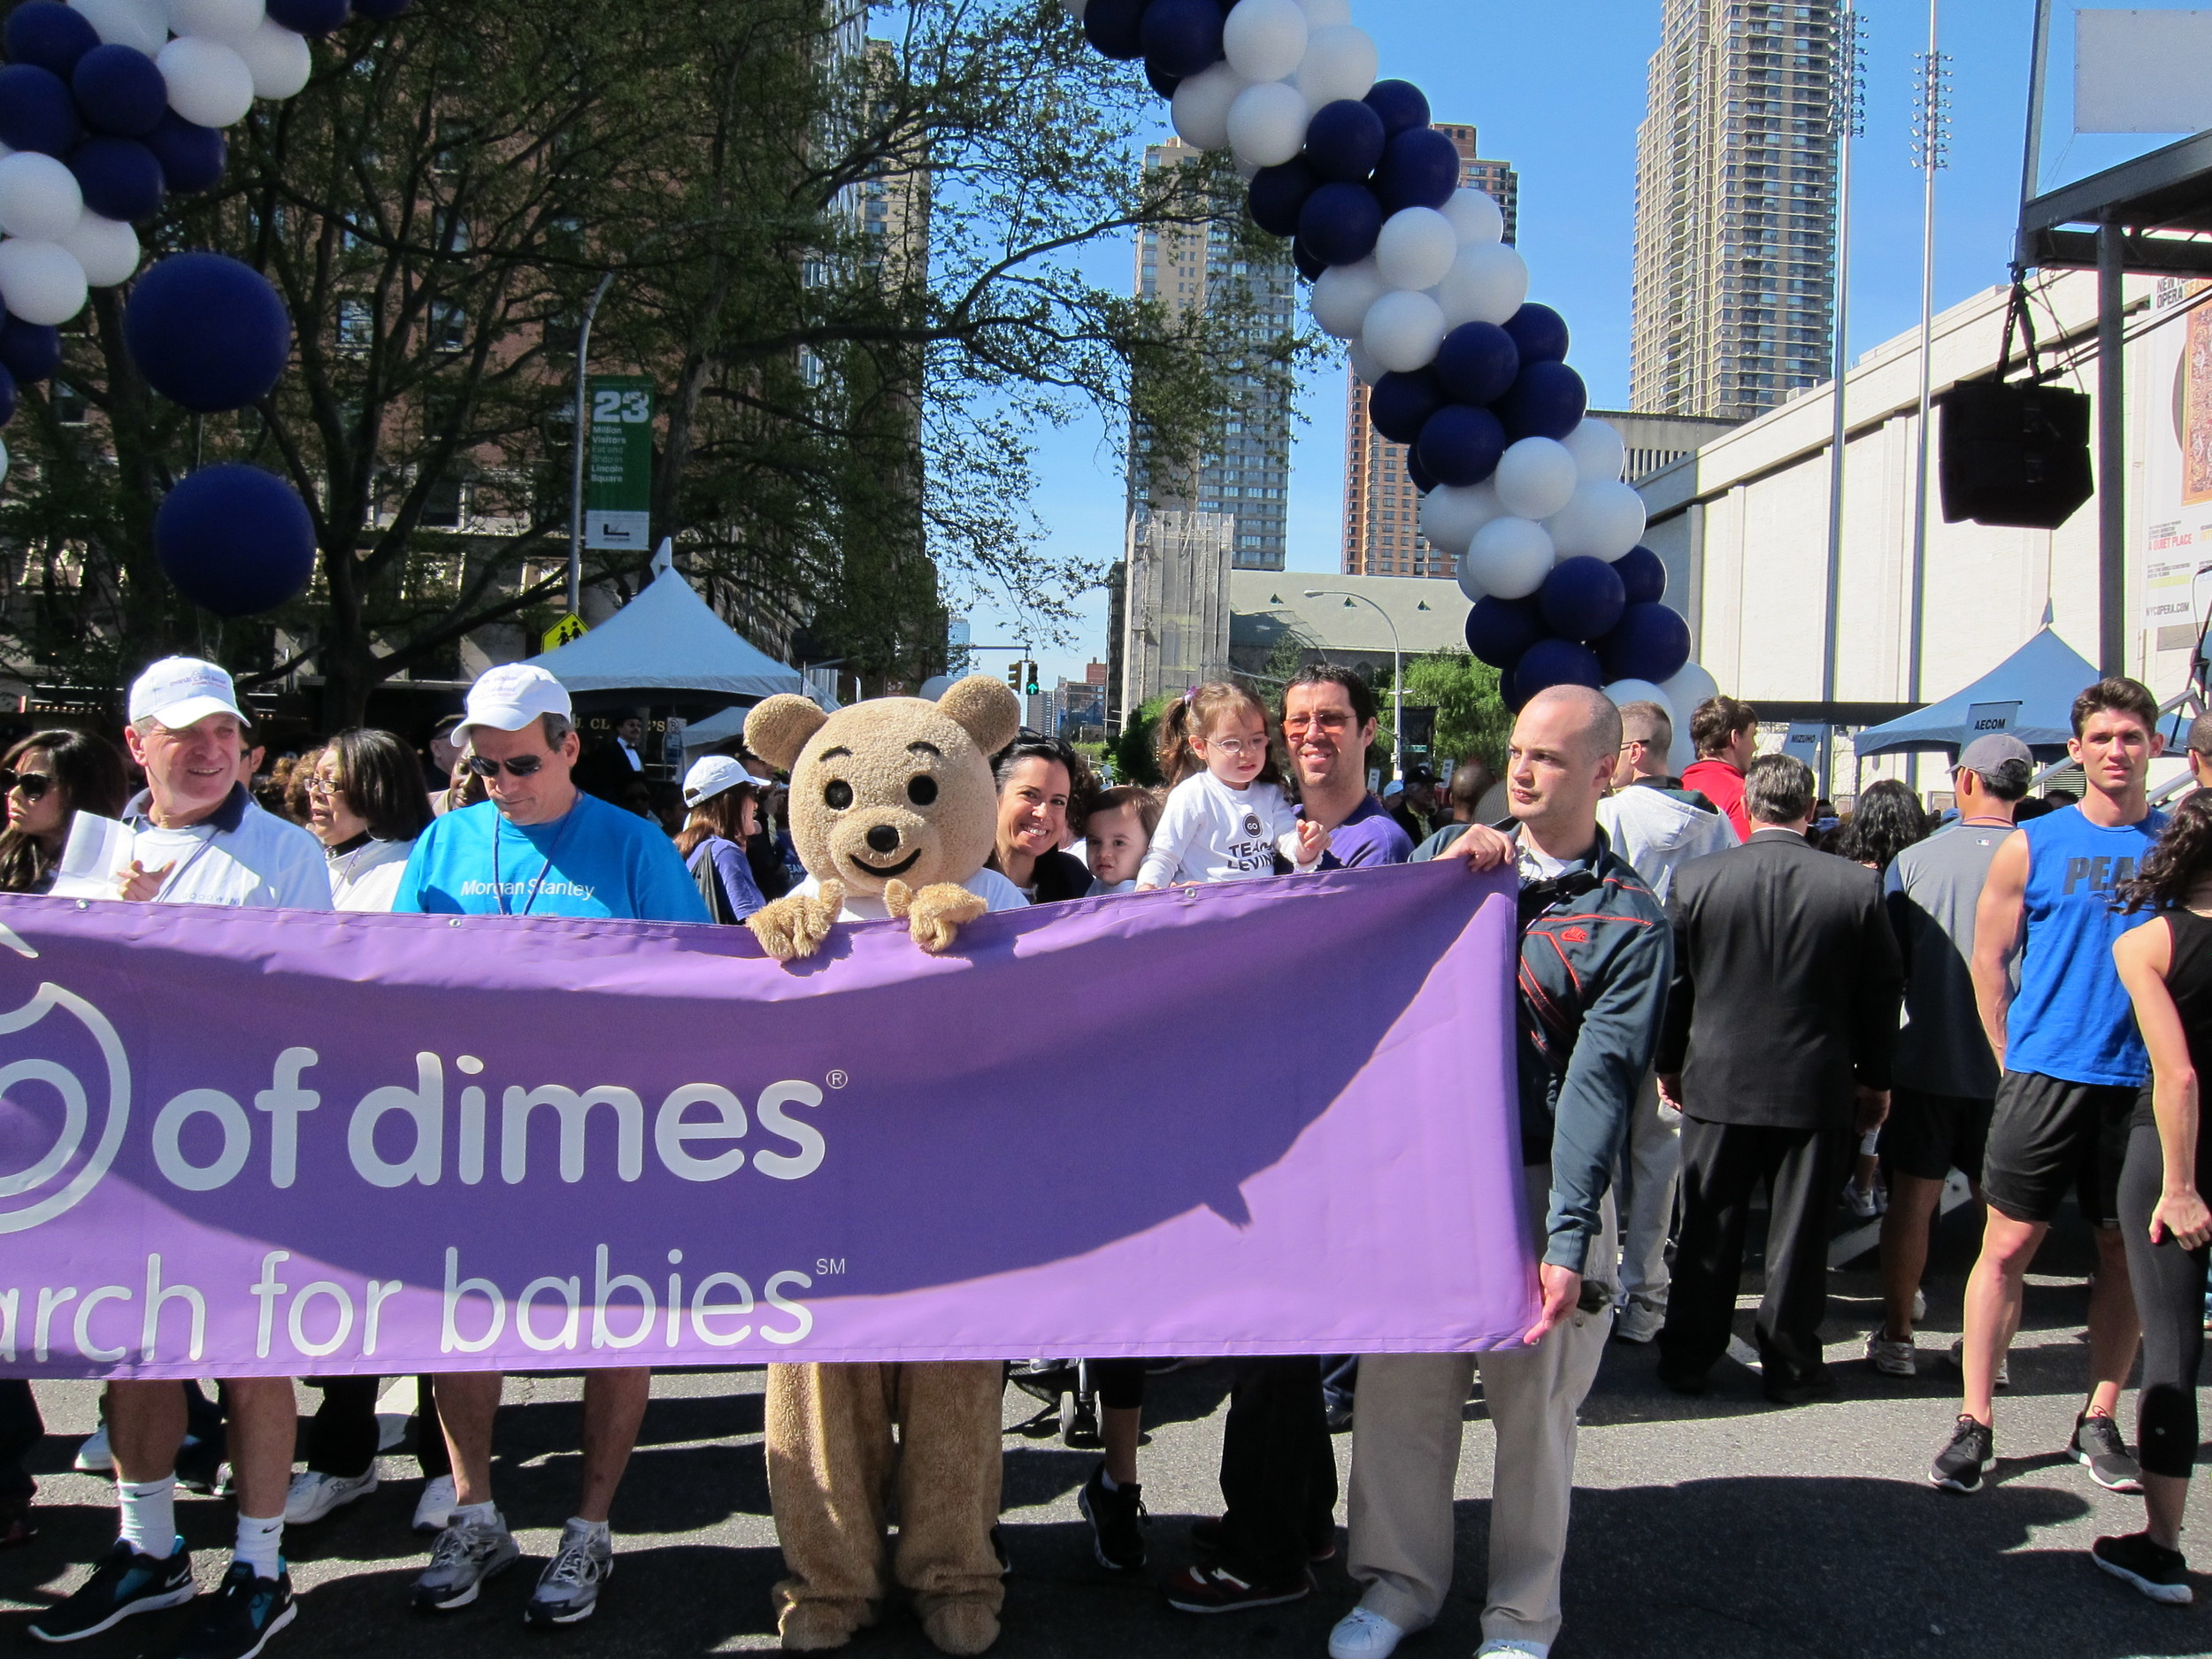 levine-family-at-the-march-for-babies-starting-line_6863188544_o.jpg